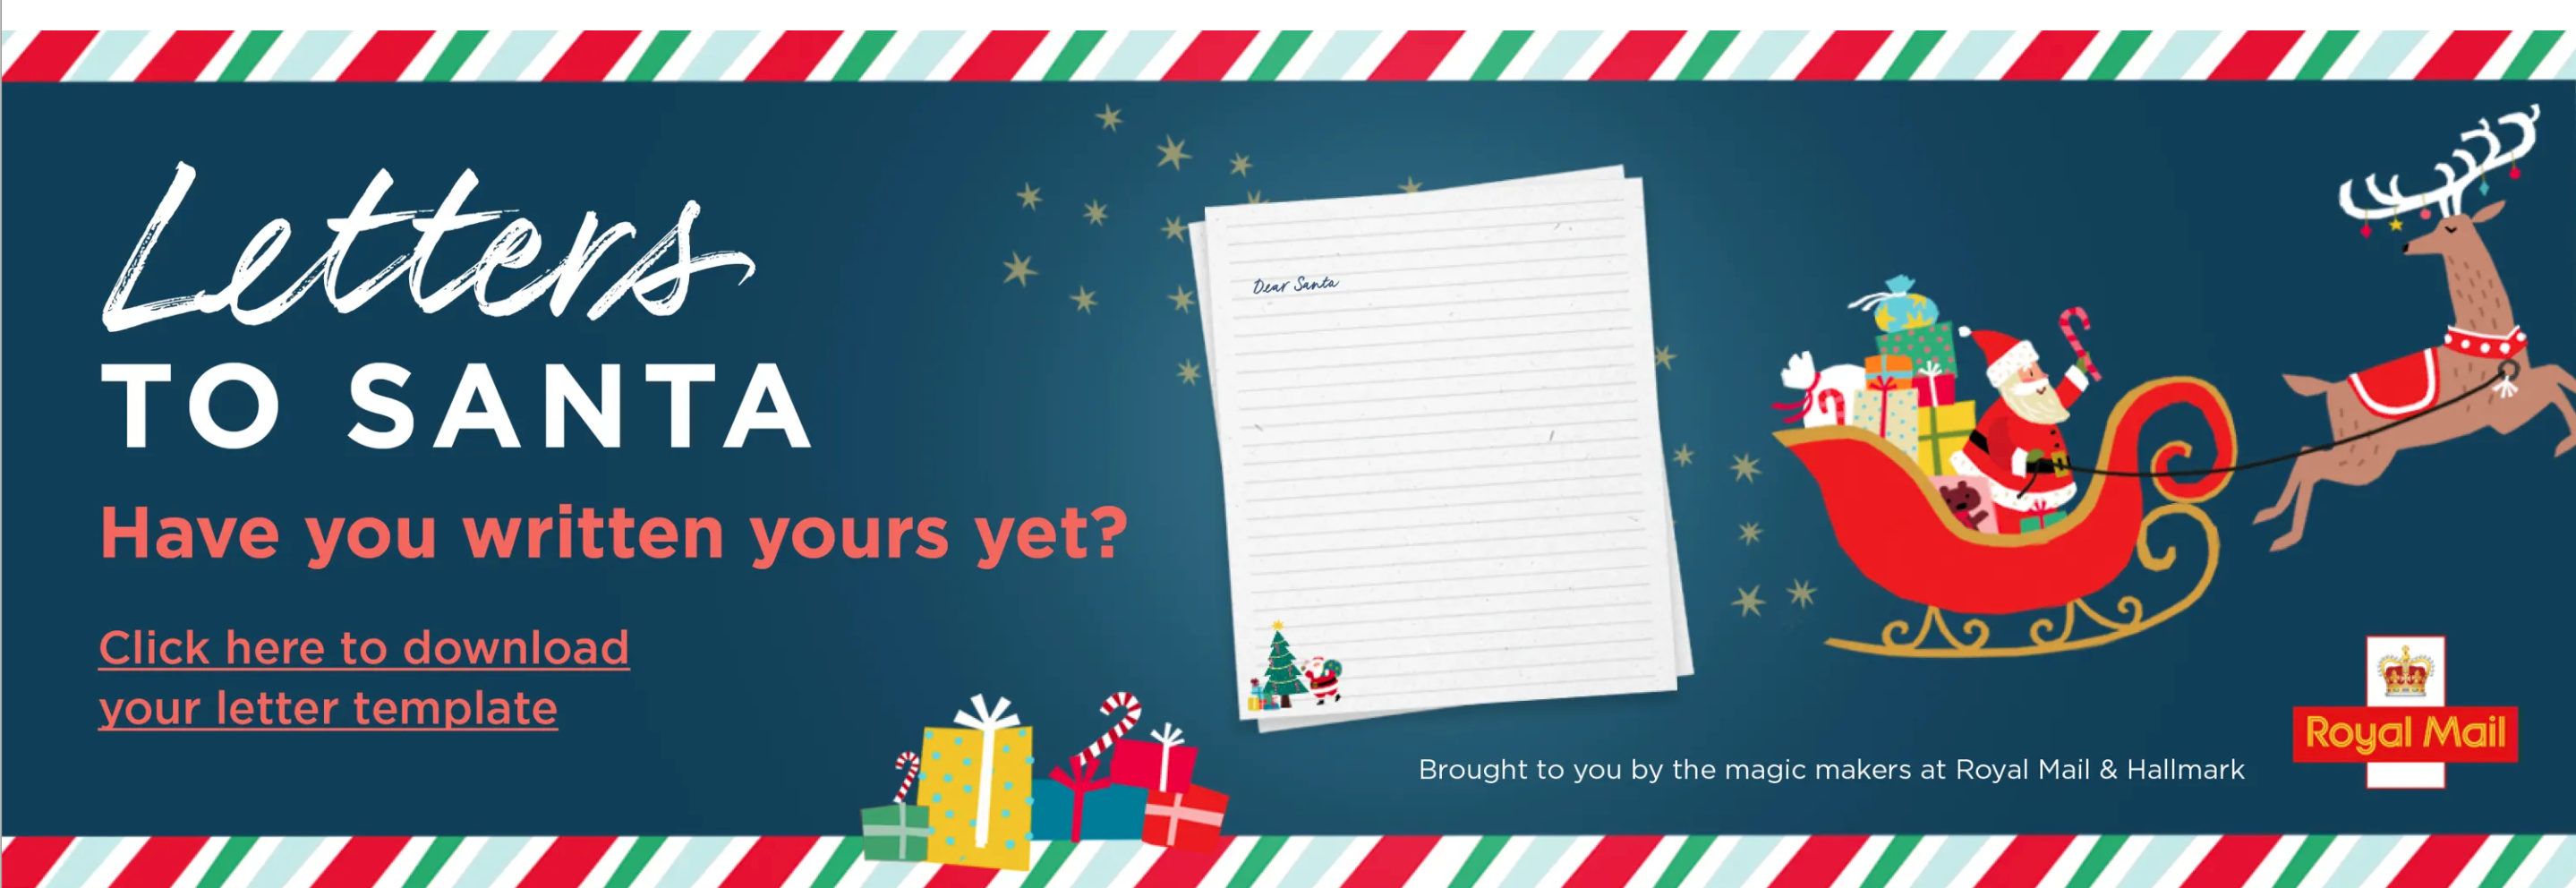 Above: Hallmark is also promoting the Letter to Santa initiative on its new consumer website.